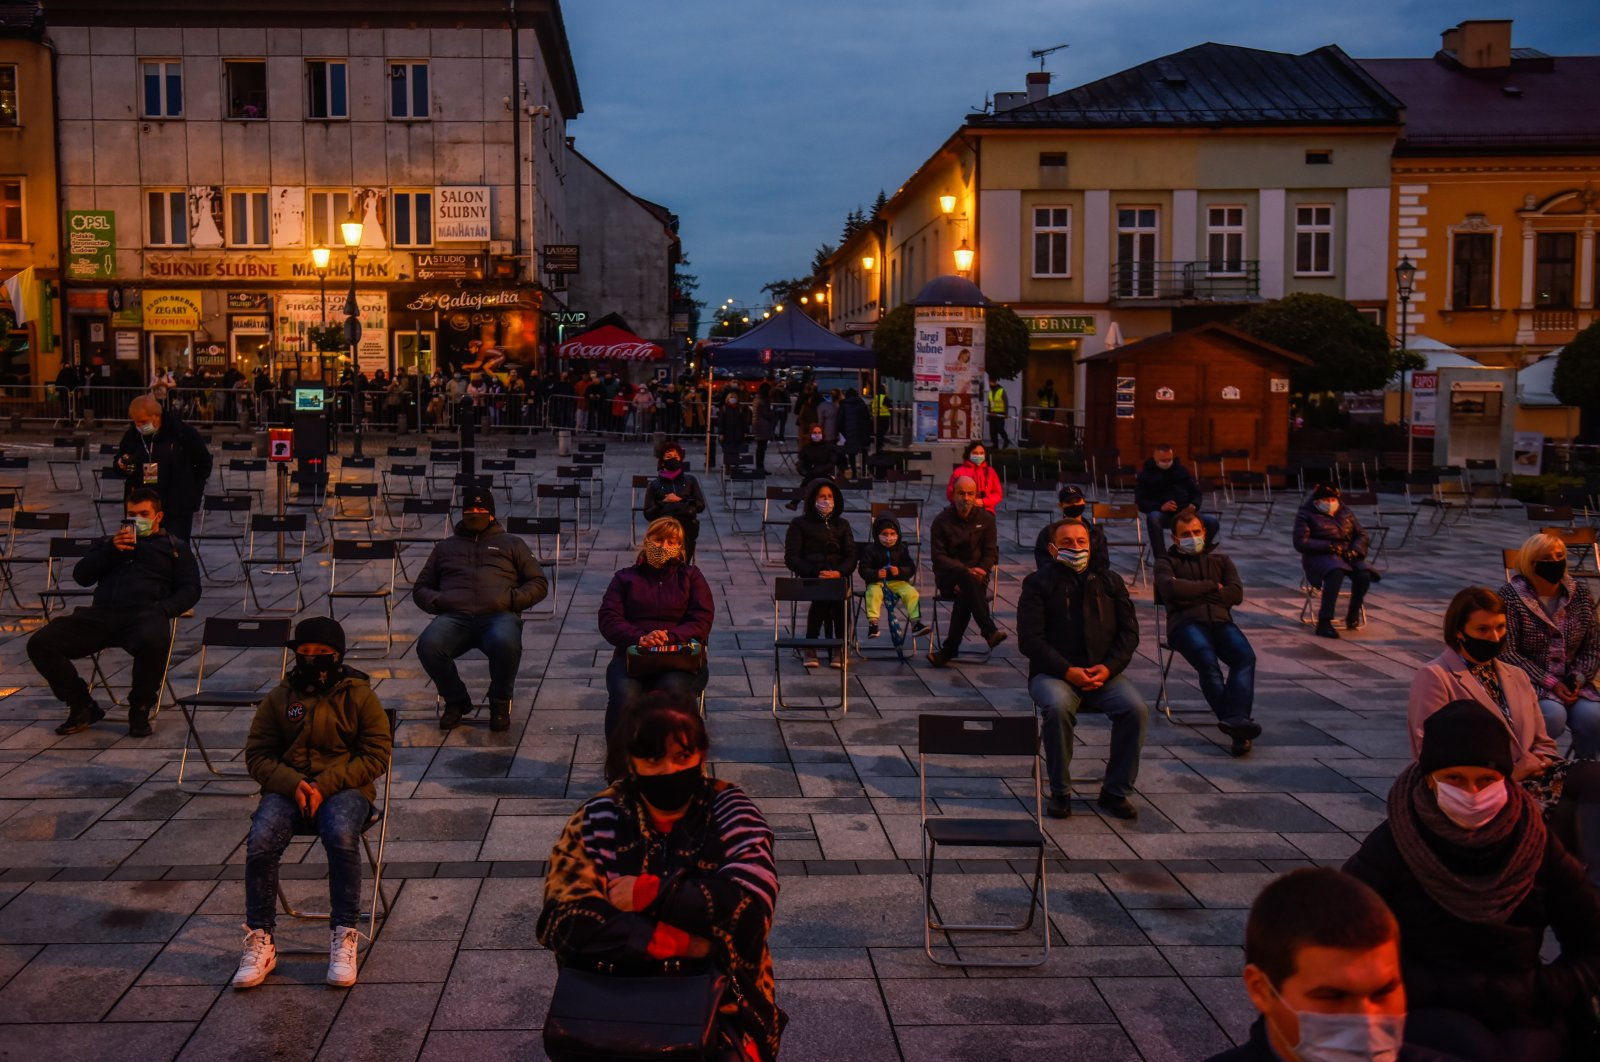 Fans wear protective masks and sit under social distance measures during a concert at the Main Square, in Wadowice, Poland, Oct. 18, 2020. (Photo by Getty Images)